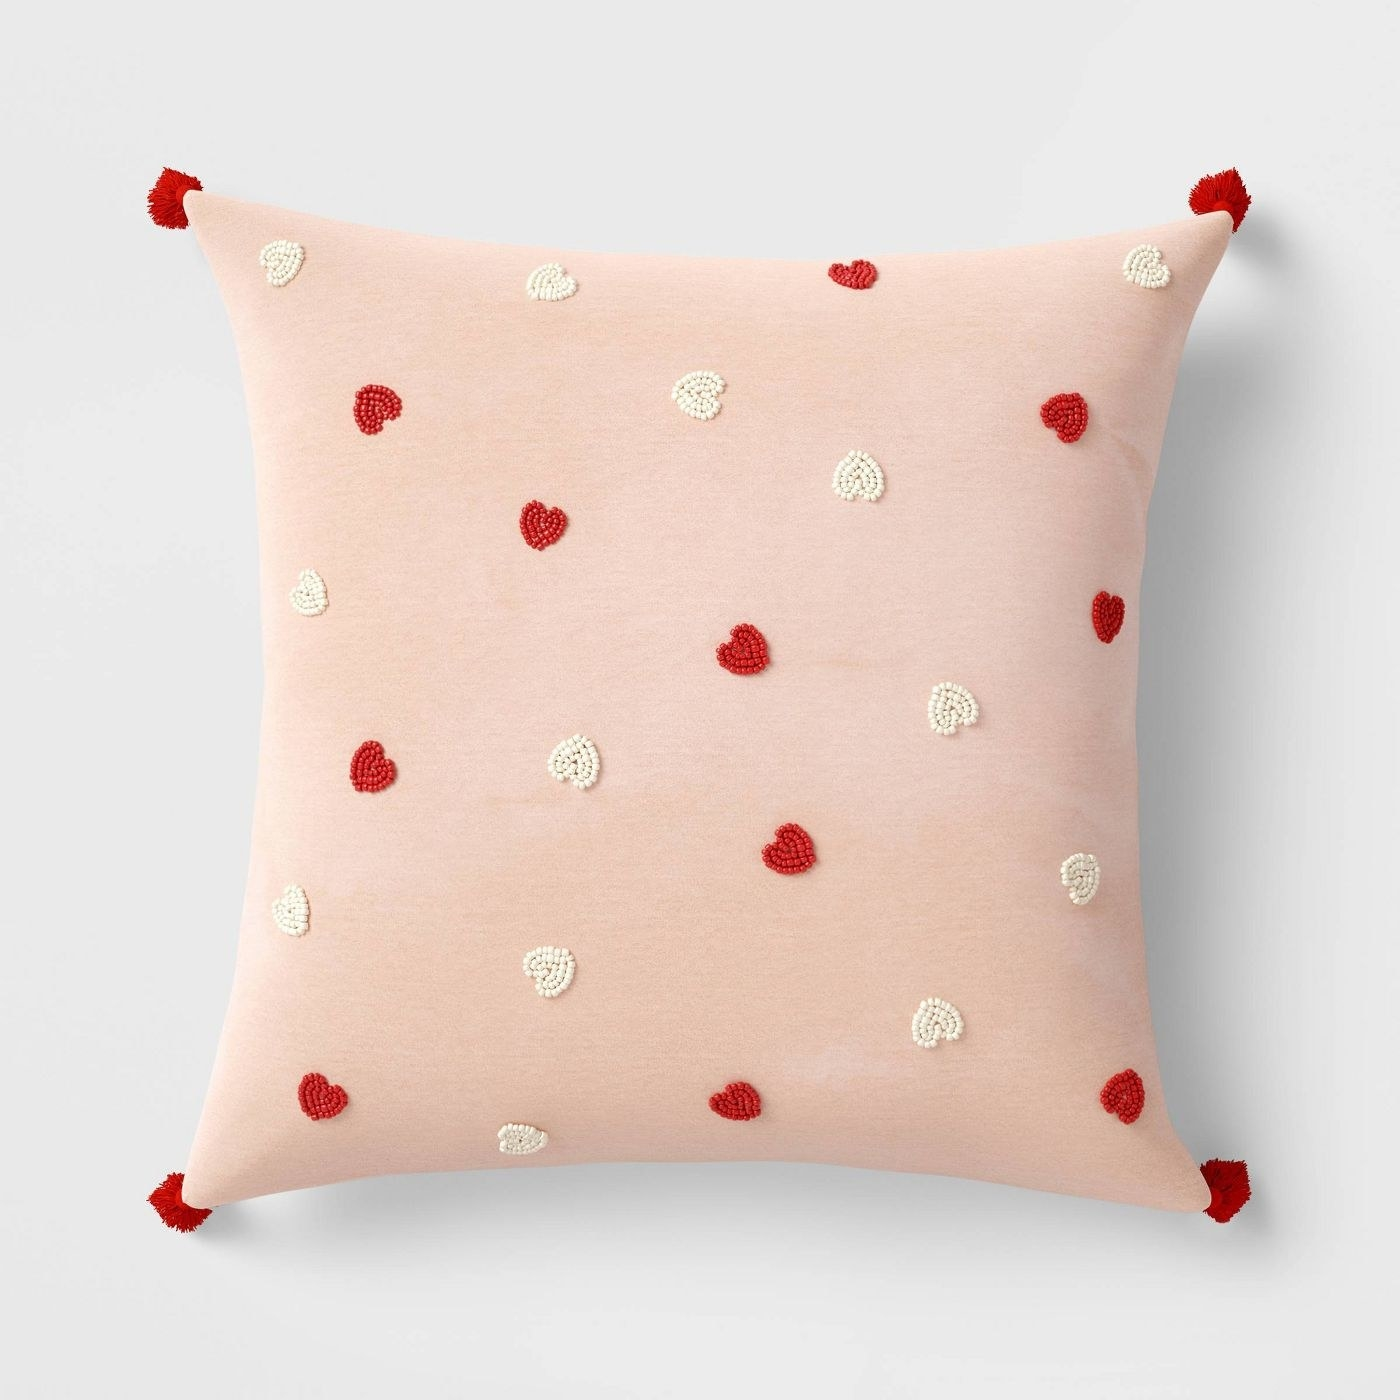 The pillow, which is square, blush-colored, has small red poms at each corner, and is dotted with small beaded hearts in red and white